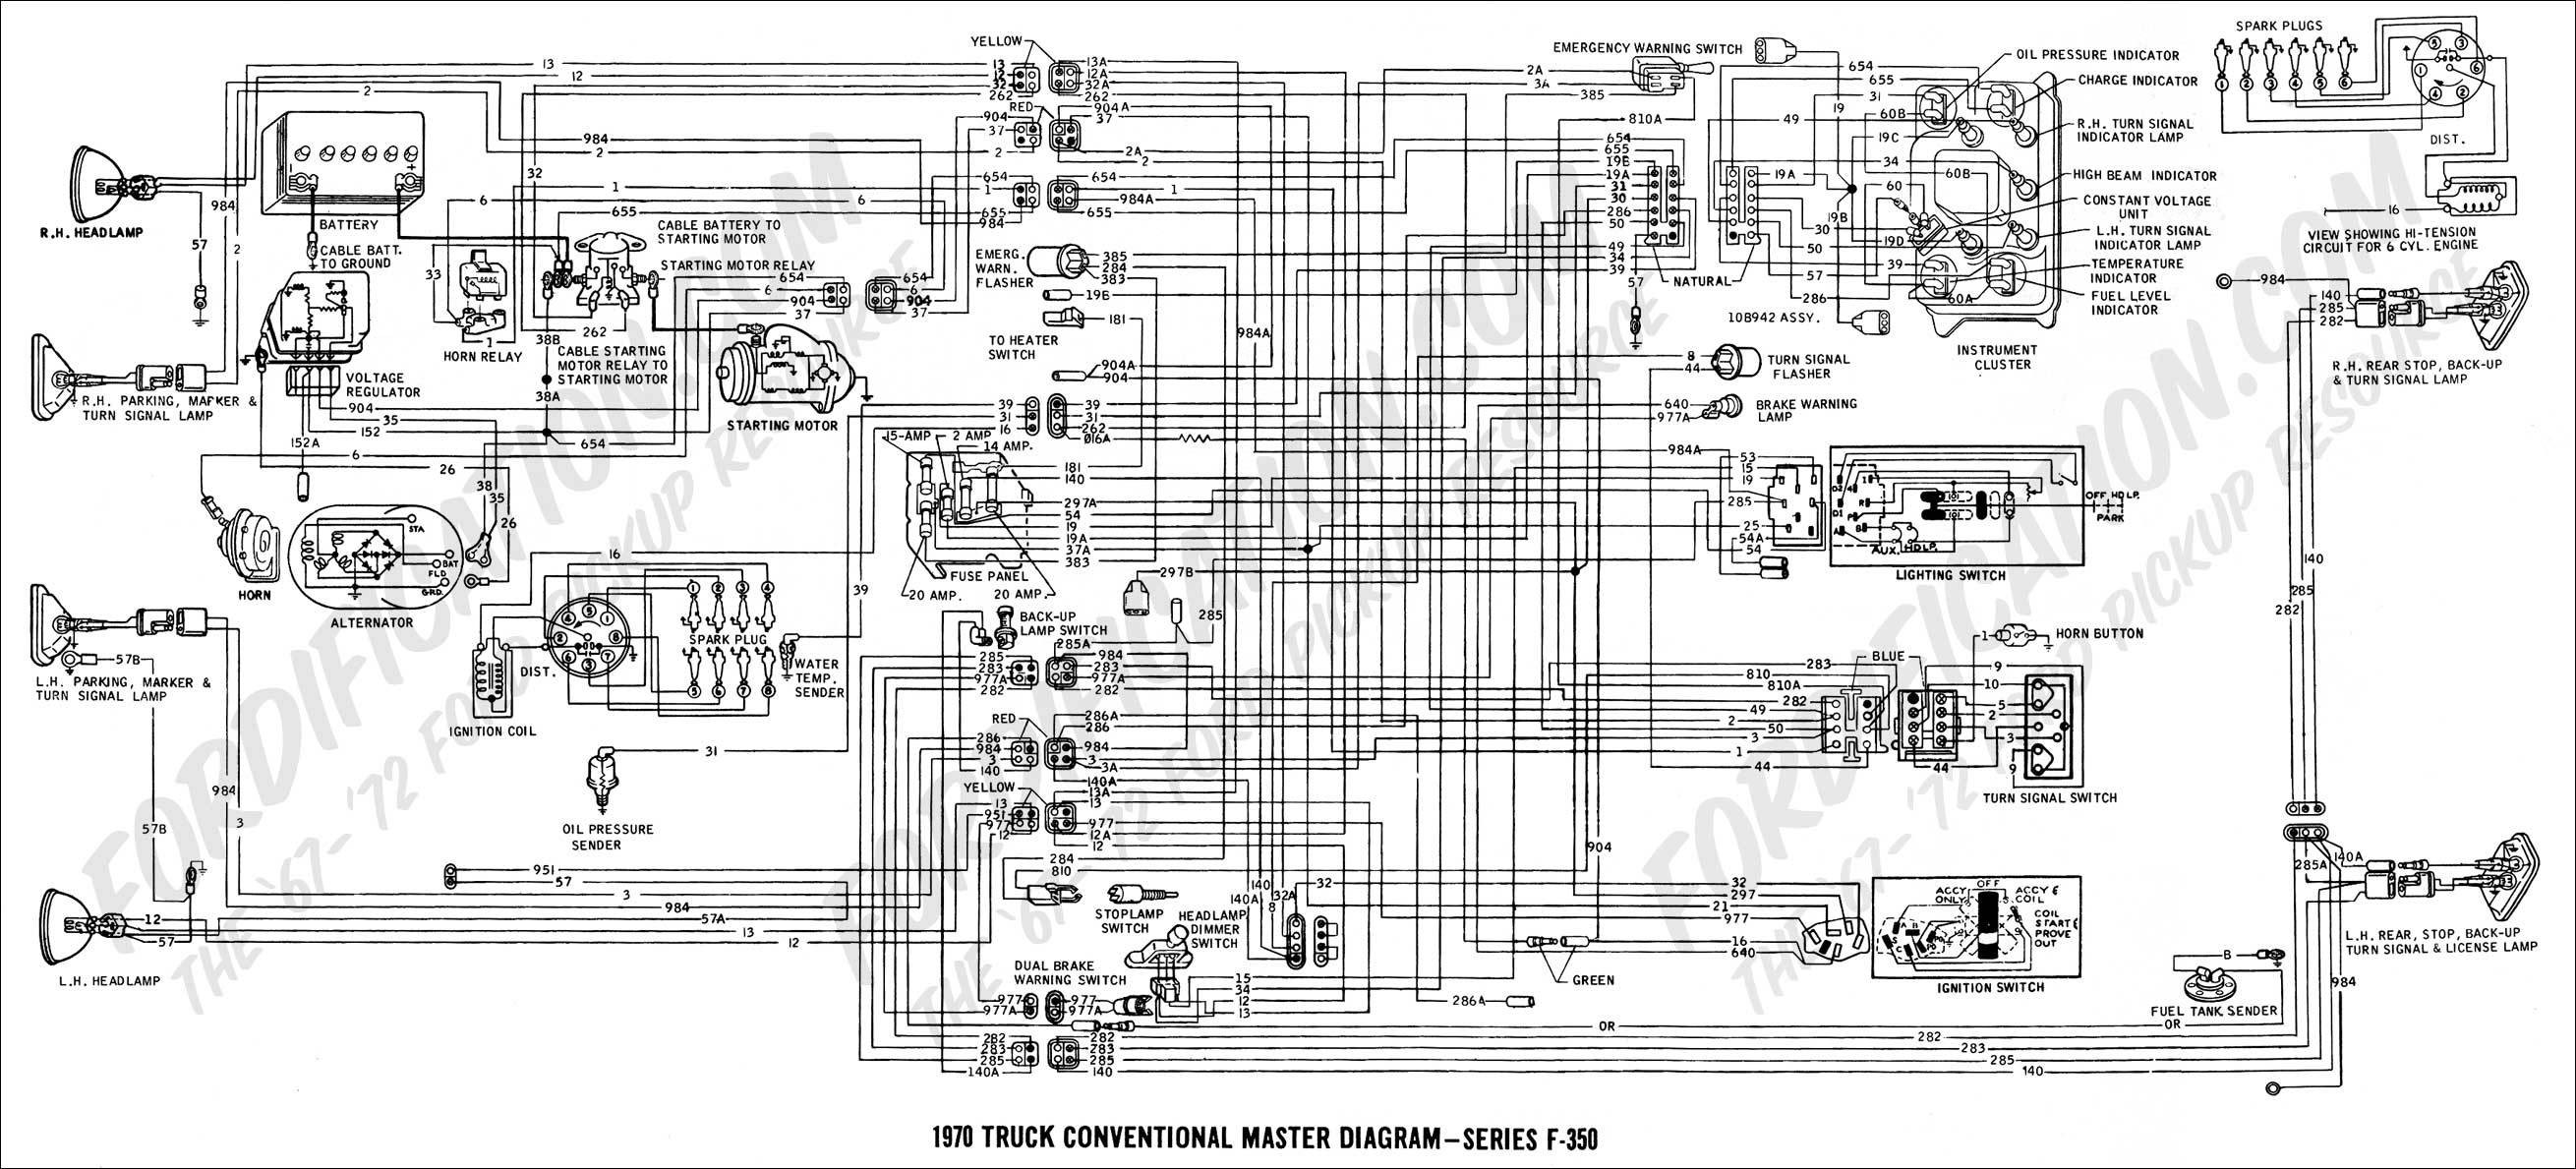 Renault Mascott Wiring Diagram Library Engine Master Gallery Everything You Need Of Trafic Related Post